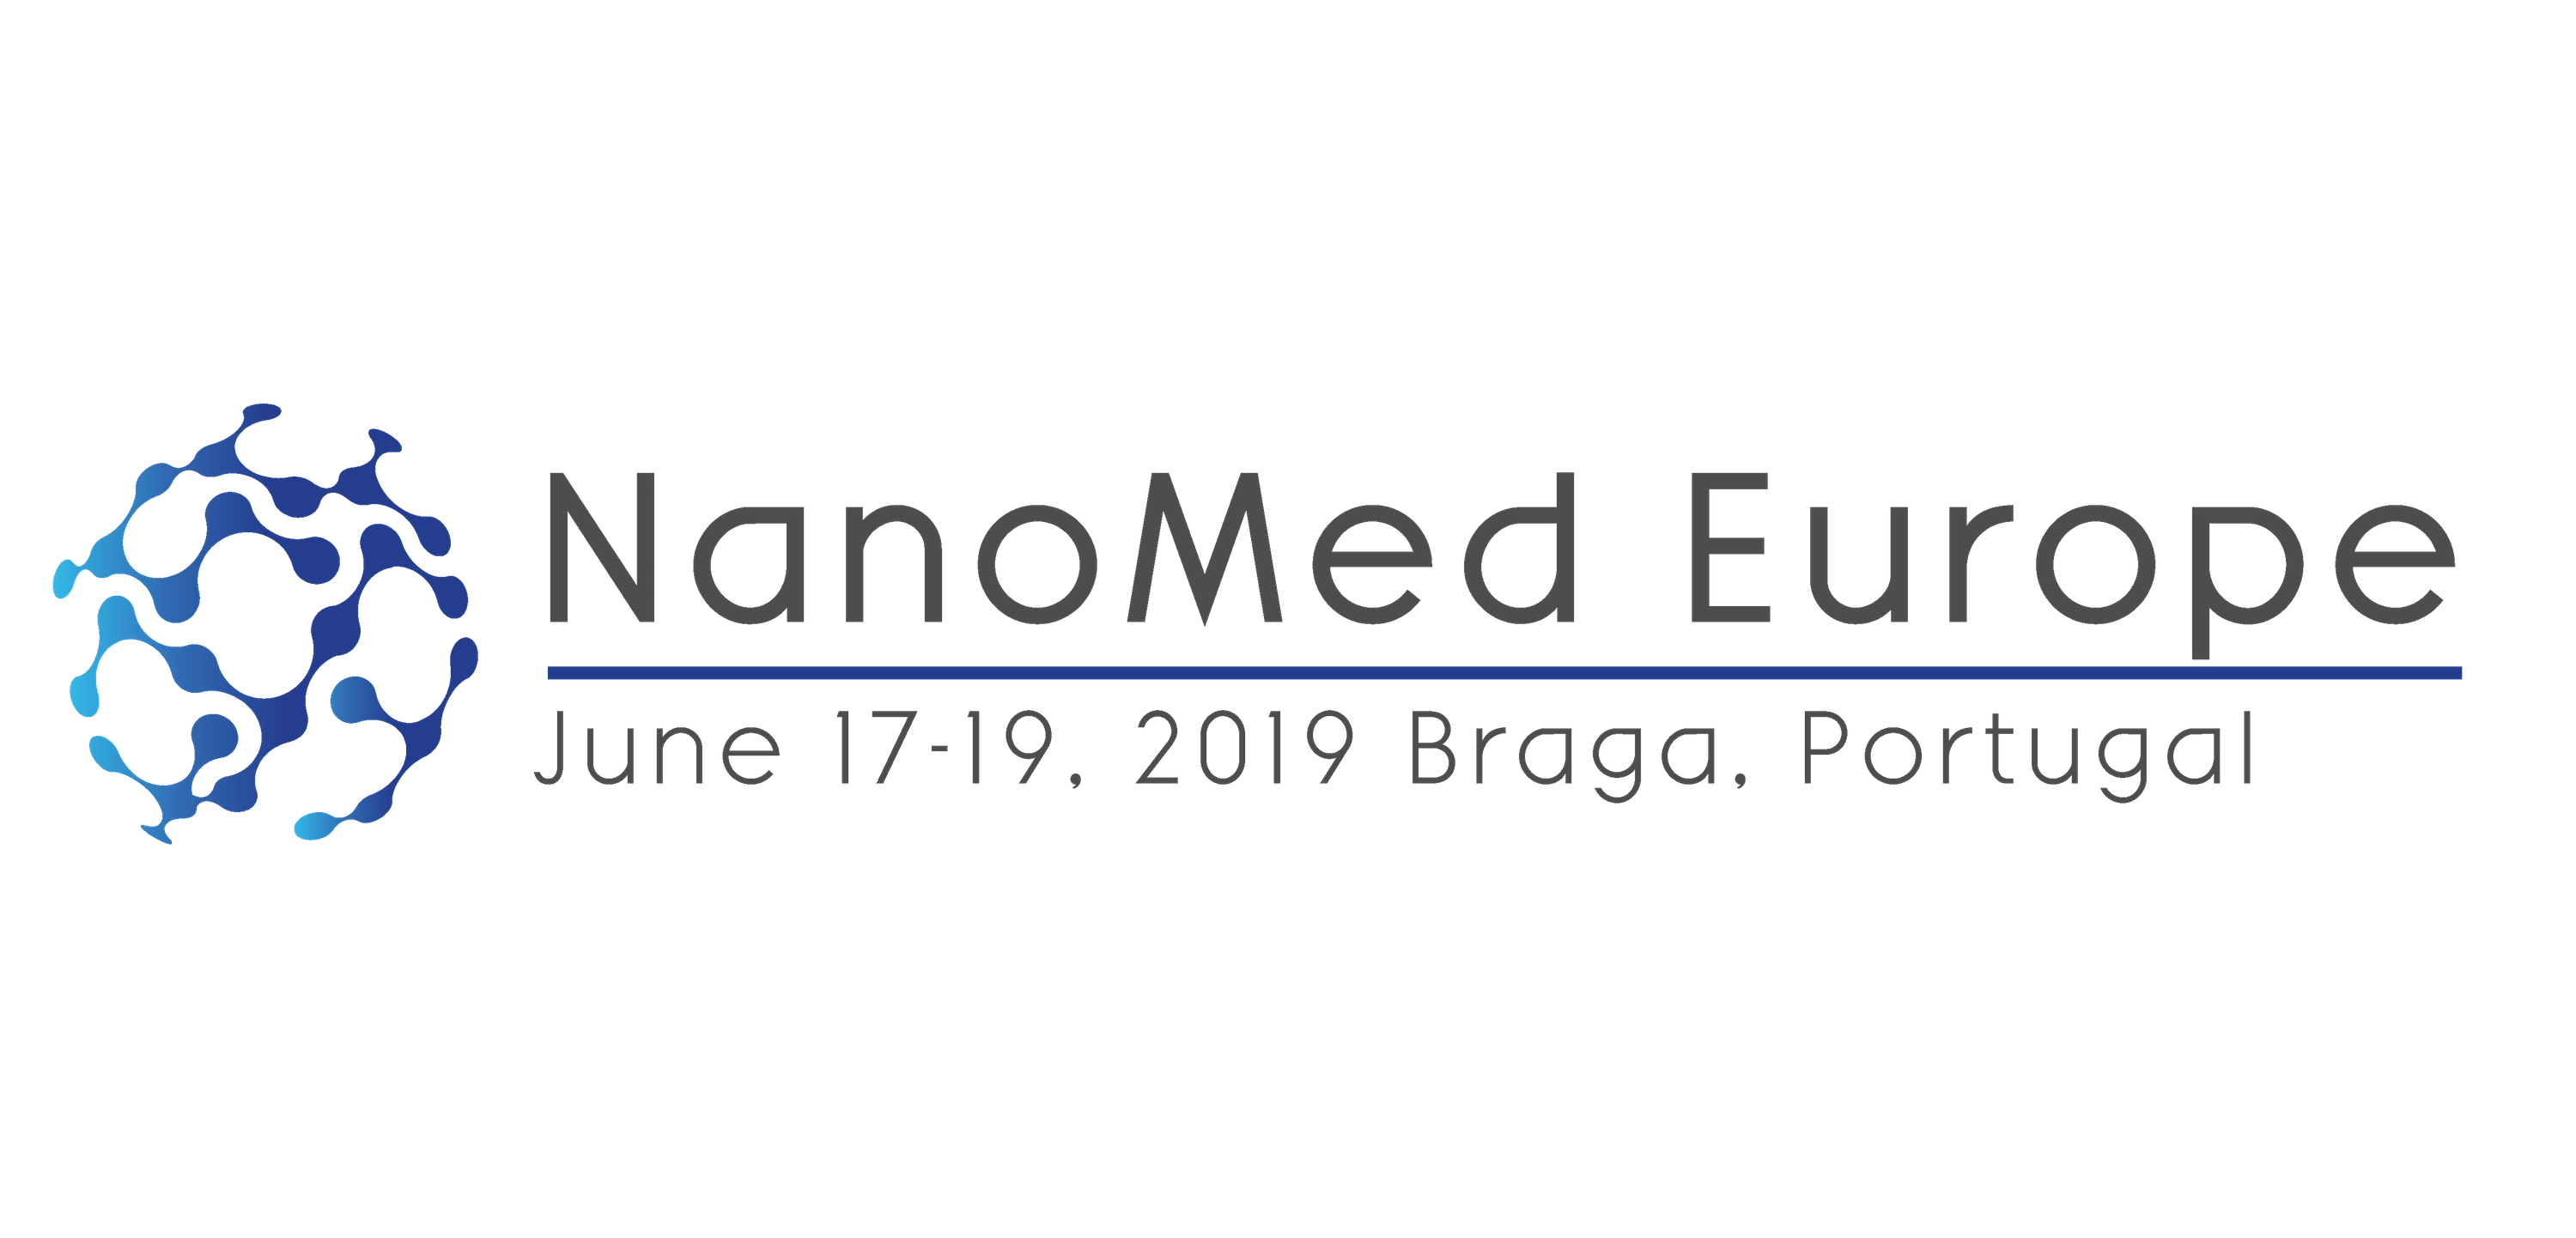 Welcome to Nanomed Europe 2019 #NME19 June 17-19 in Braga, Portugal